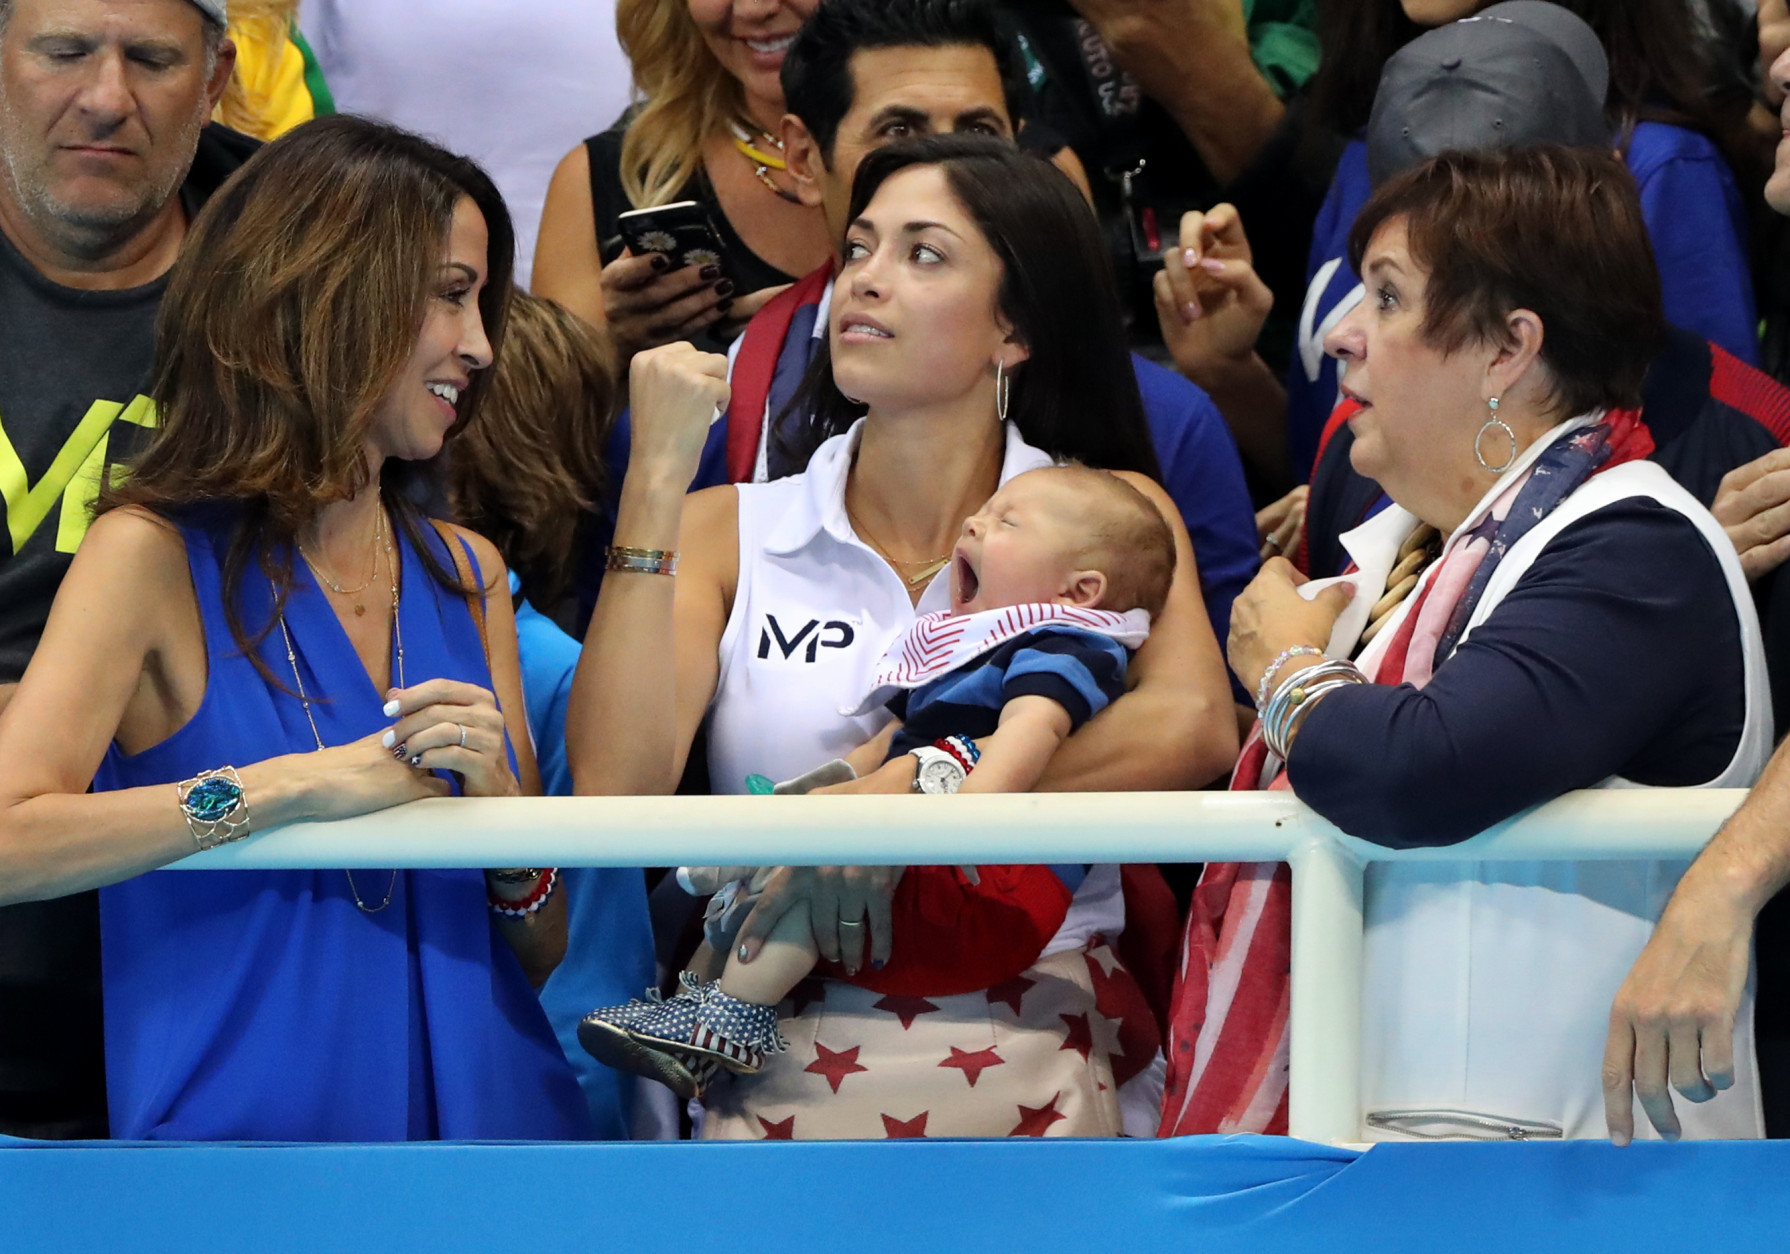 FILE - In this Aug. 13, 2016, file photo, Nicole Johnson, fiance of United States' Michael Phelps, holds their baby Boomer, as she stands along with Phelps' mother Debbie and sister during the men's 4 x 100-meter medley relay final during the swimming competitions at the 2016 Summer Olympics, in Rio de Janeiro, Brazil. Phelps can't wait to return home to Arizona and settle into a retirement of changing diapers, bottle-feeding and watching Boomer grow. (AP Photo/Lee Jin-man, File)